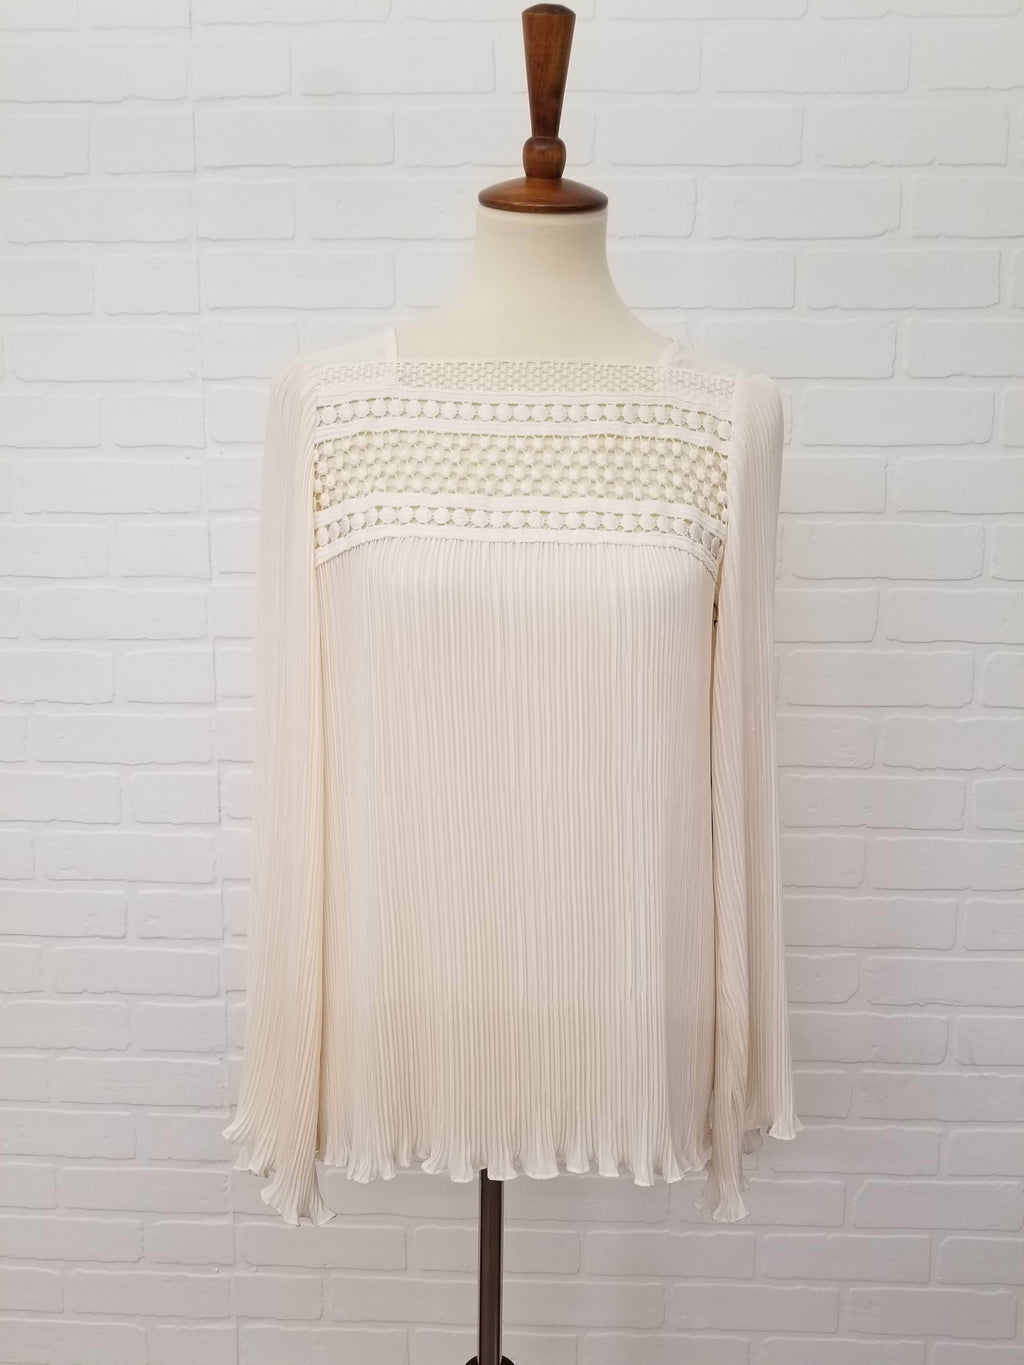 Nanette Lepore Swinging Top Long Sleeves Size 4 Small